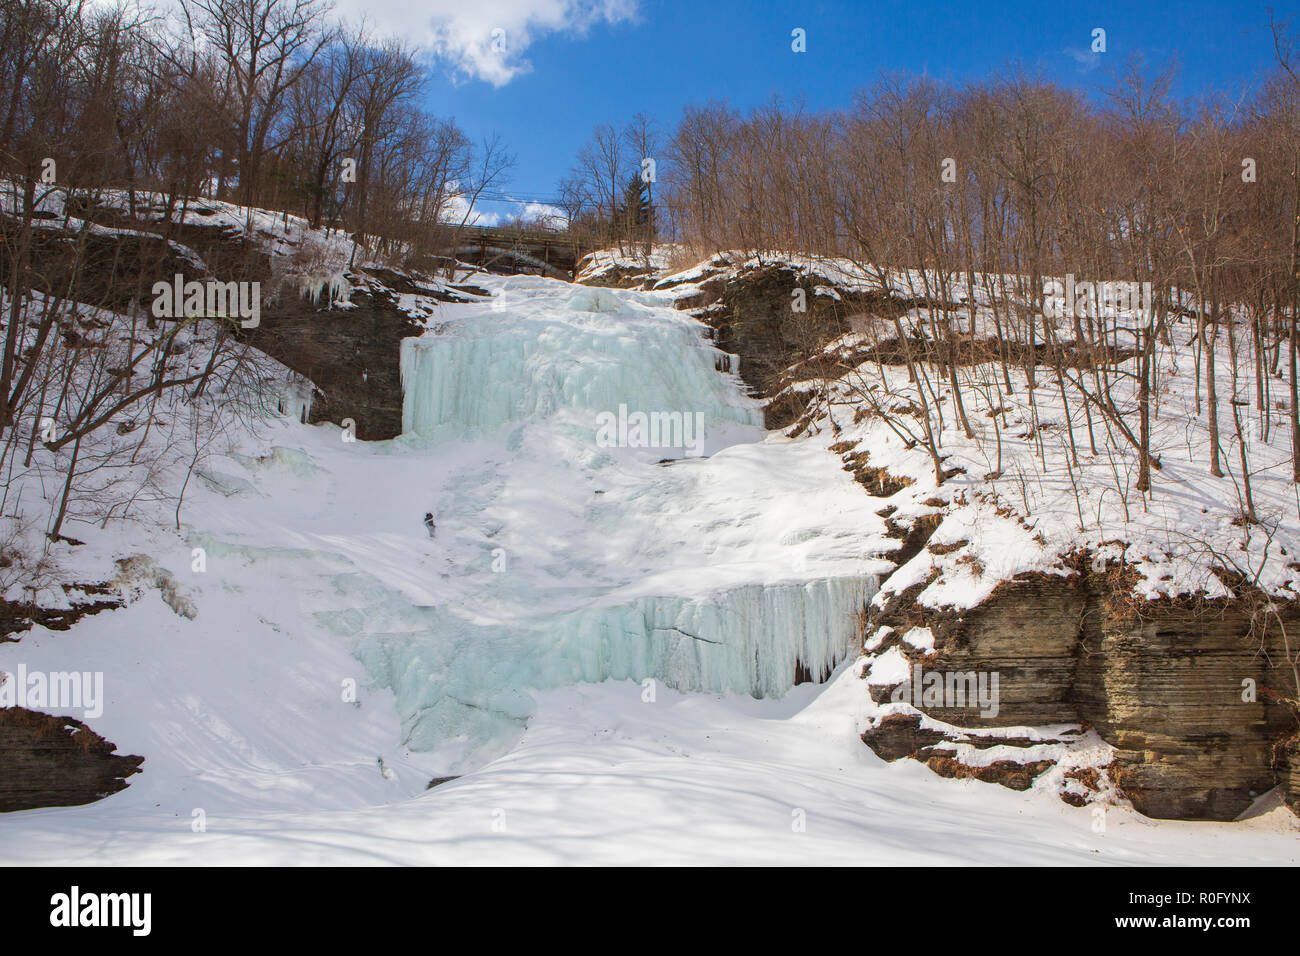 Montour Falls, frozen on a sunny winter day, which is located in Schuyler County, New York State about 10 miles south of Watkins Glen. Stock Photo